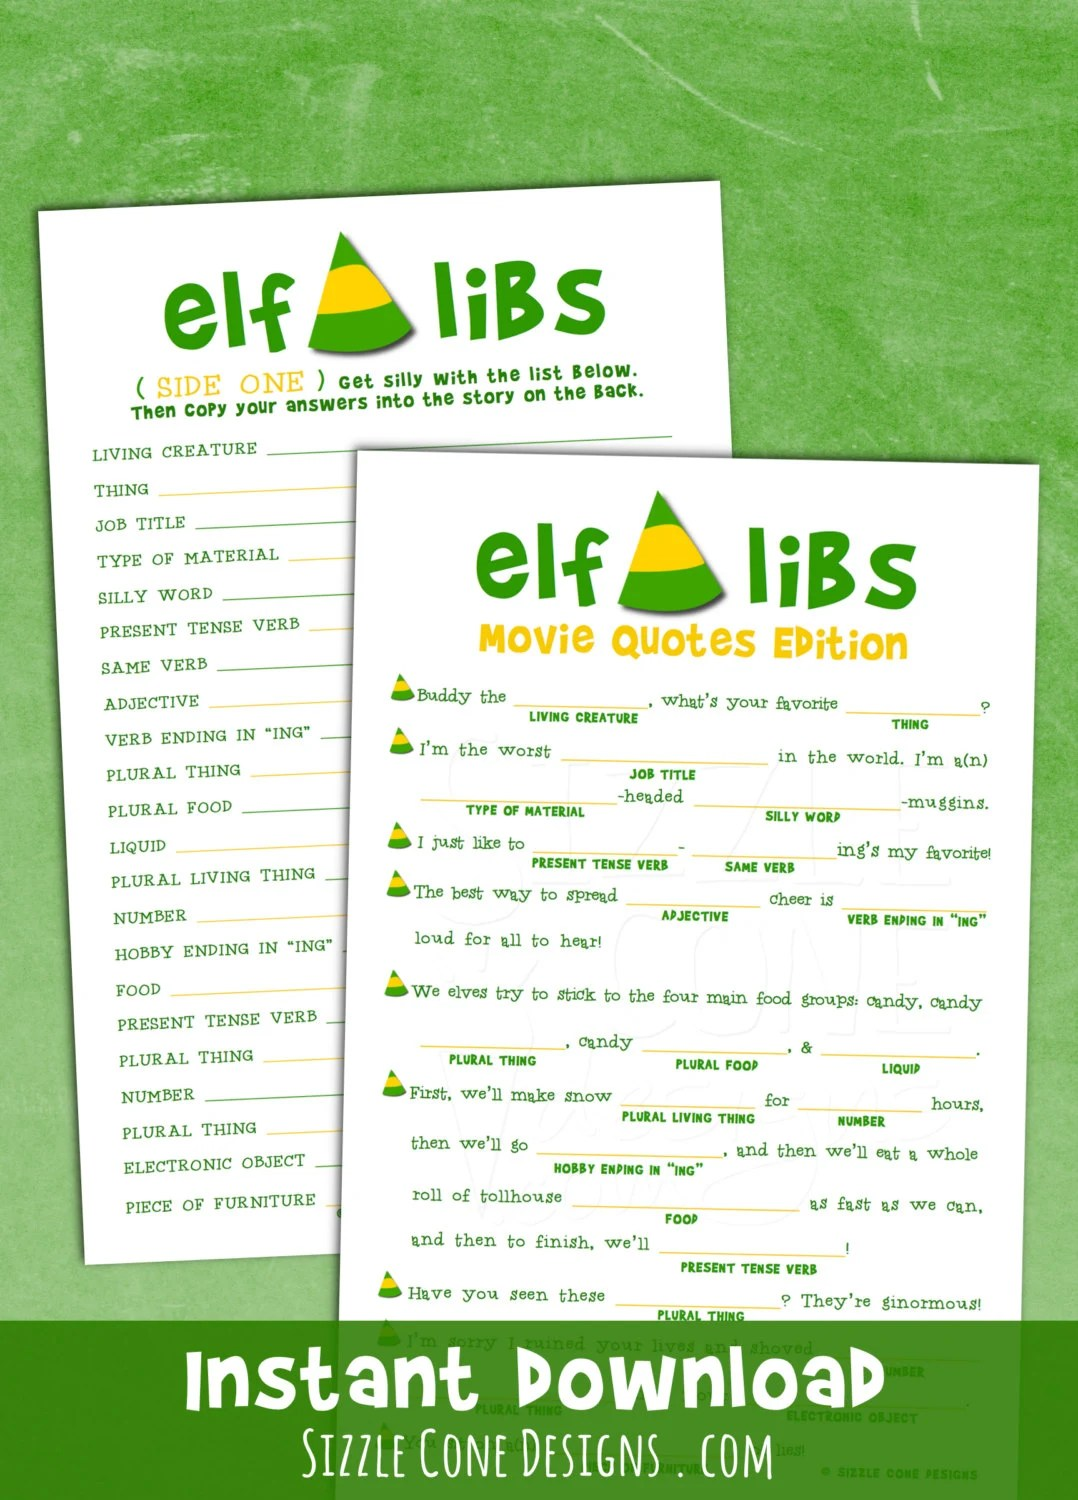 Elf Libs Movie Quotes Printable Christmas Party Game Madlib